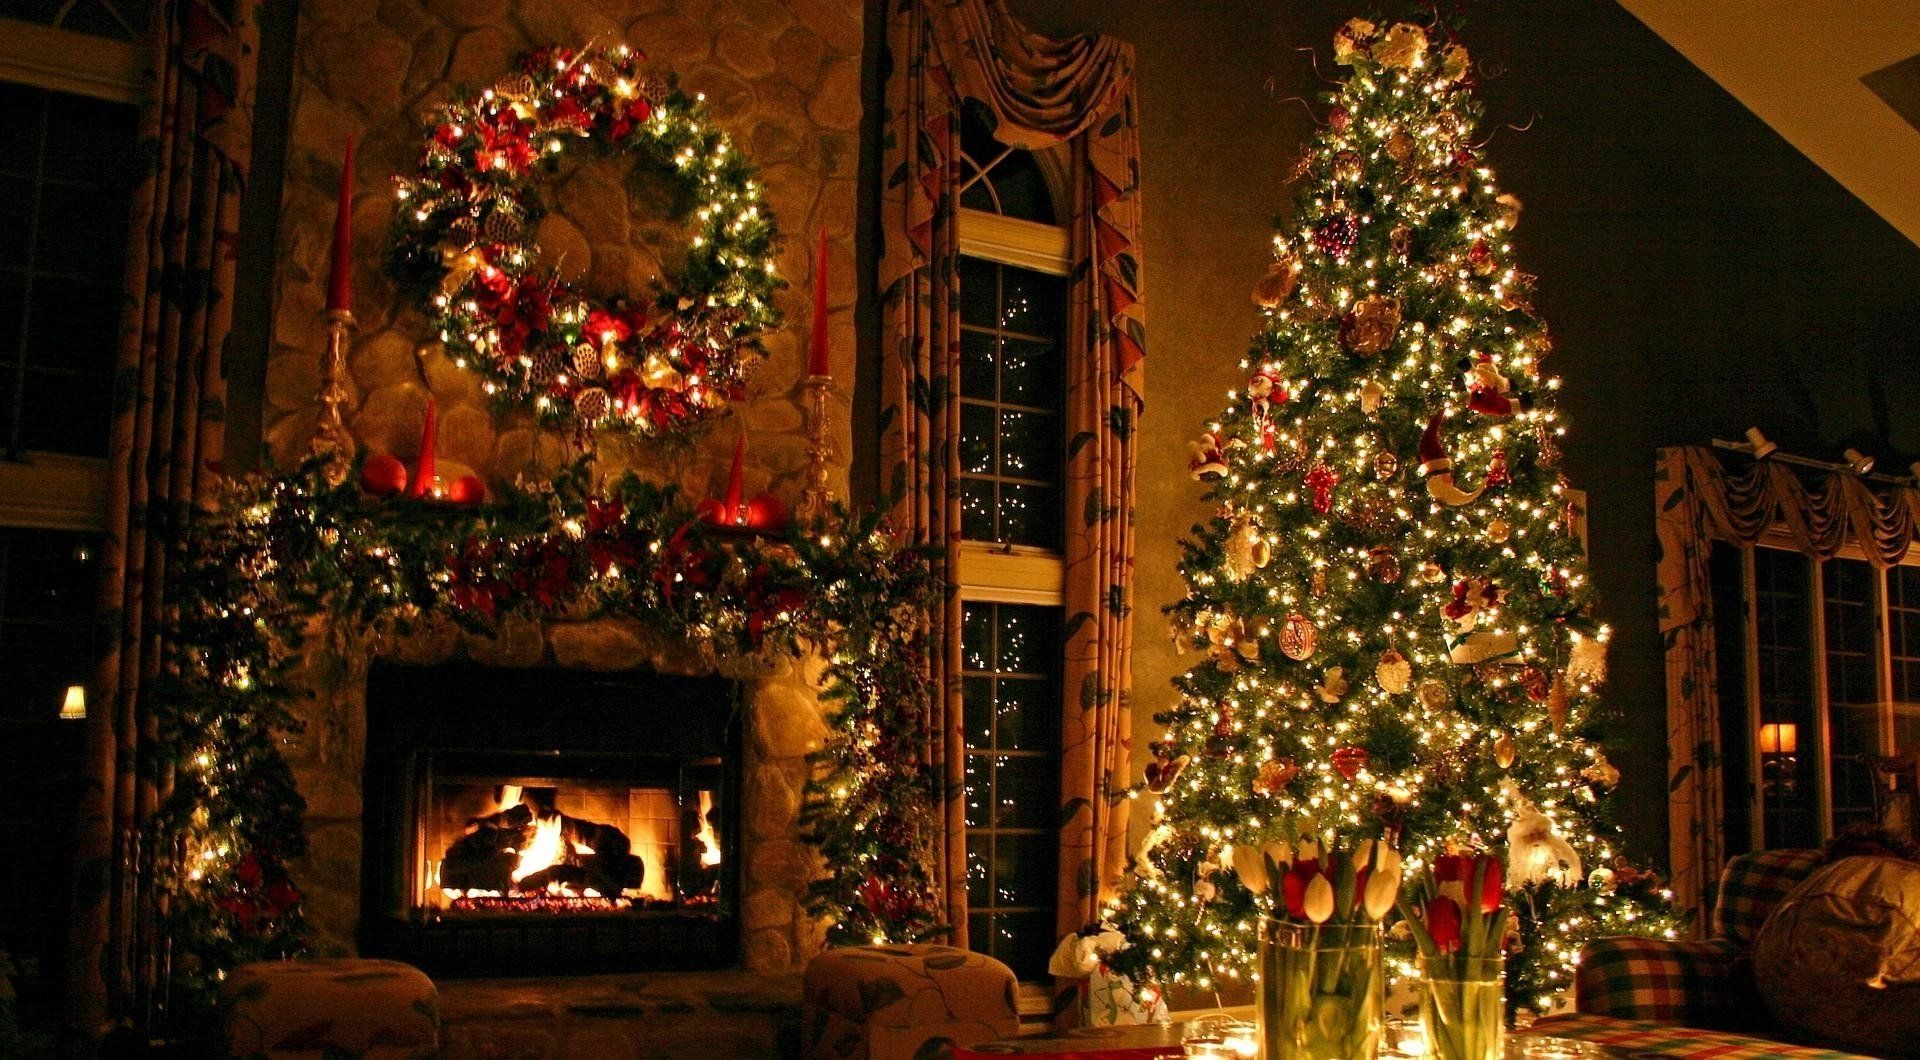 Houses Decorated For Christmas Inside decorate inside house for christmas |  home design ideas o_o